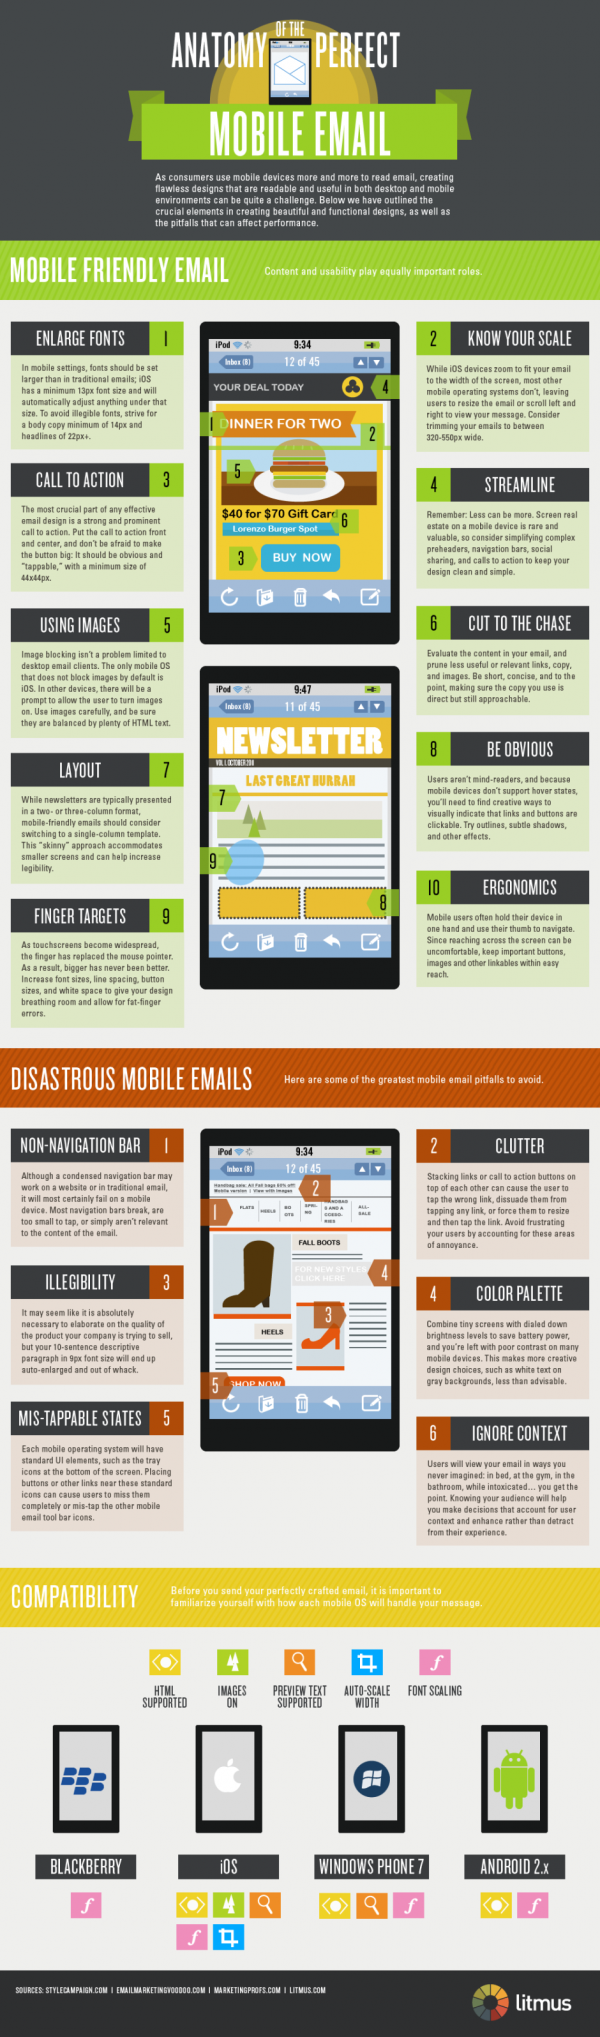 mobile e-mail marketing